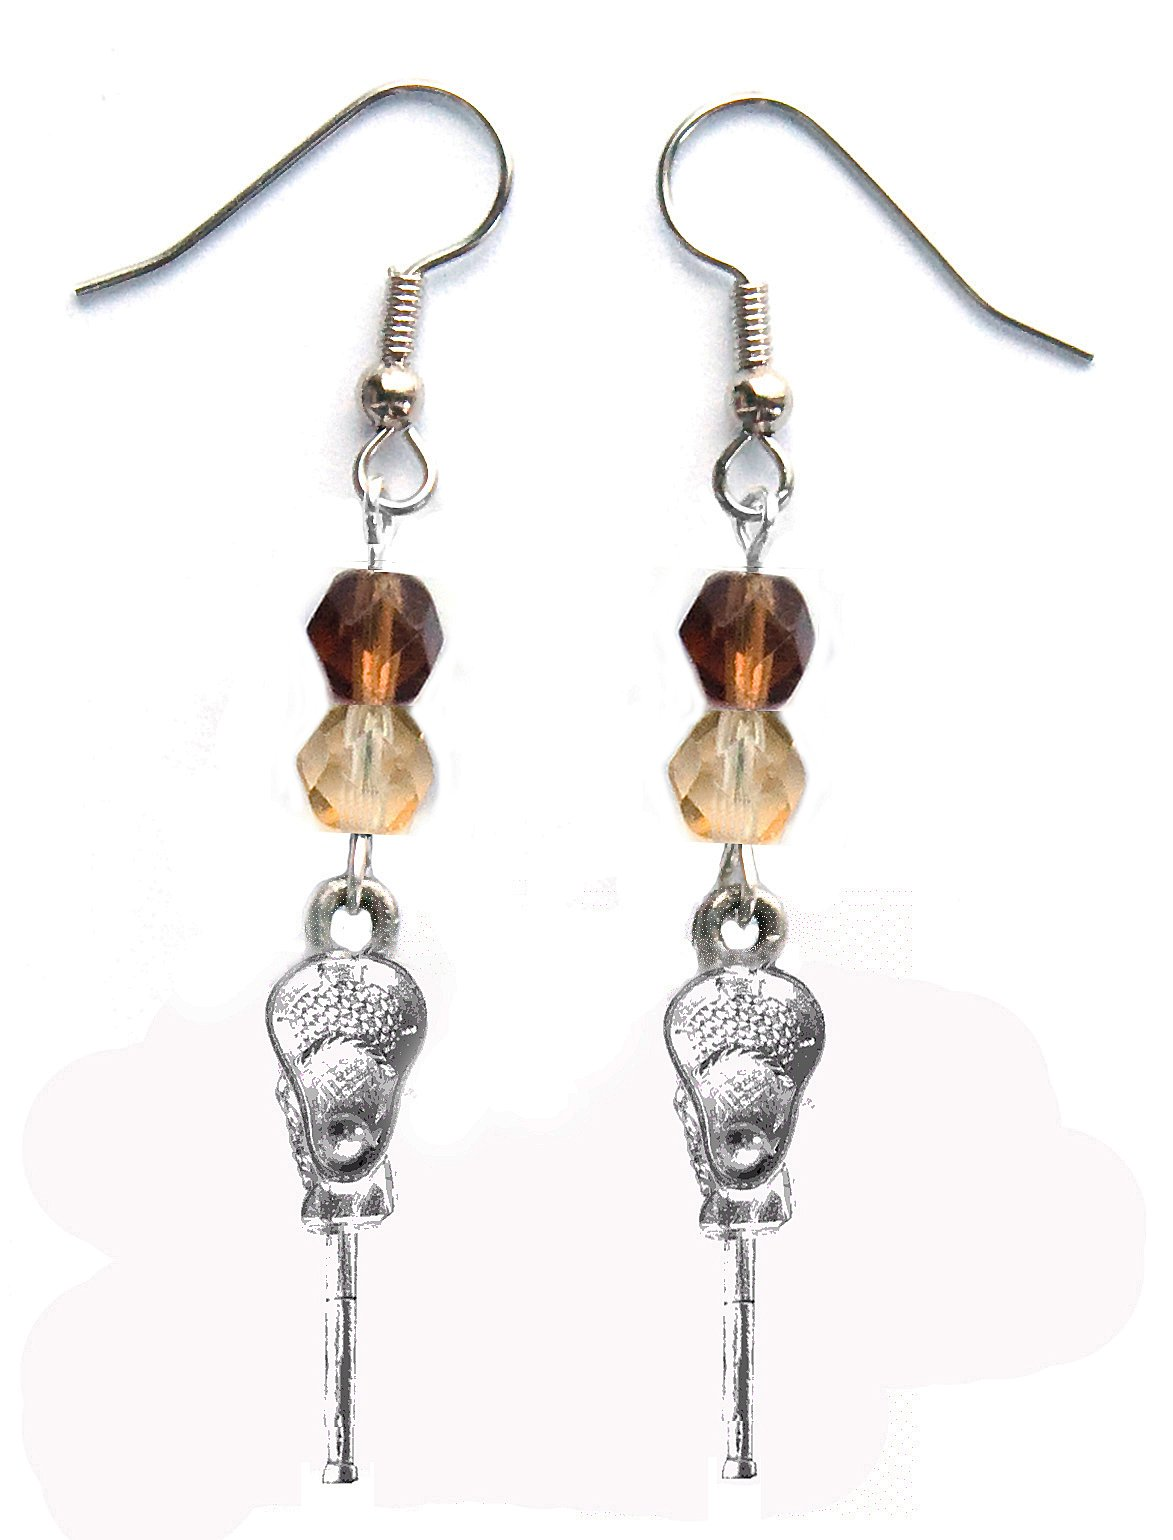 ''Lacrosse Stick & Ball'' Lacrosse Earrings (Team Colors Brown & Gold)